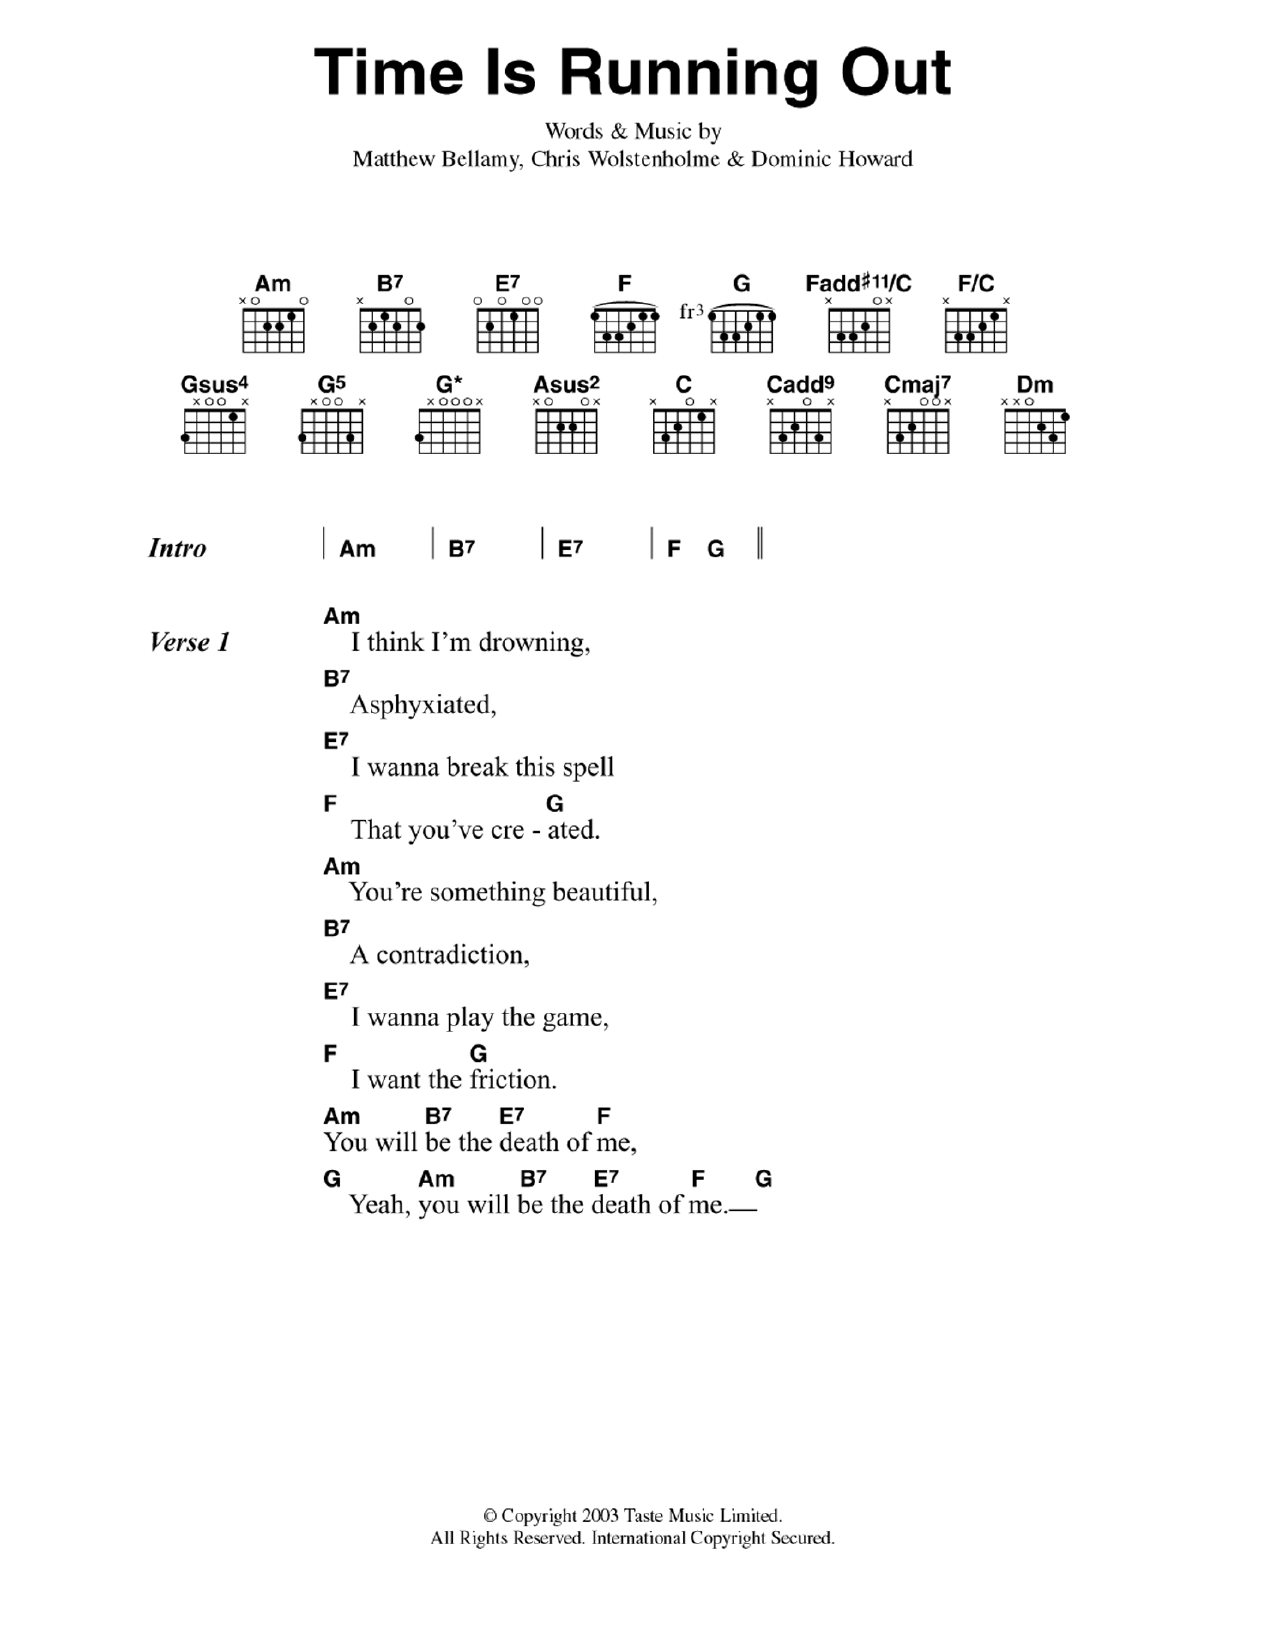 Time Is Running Out by Muse Guitar Chords/Lyrics Digital Sheet Music